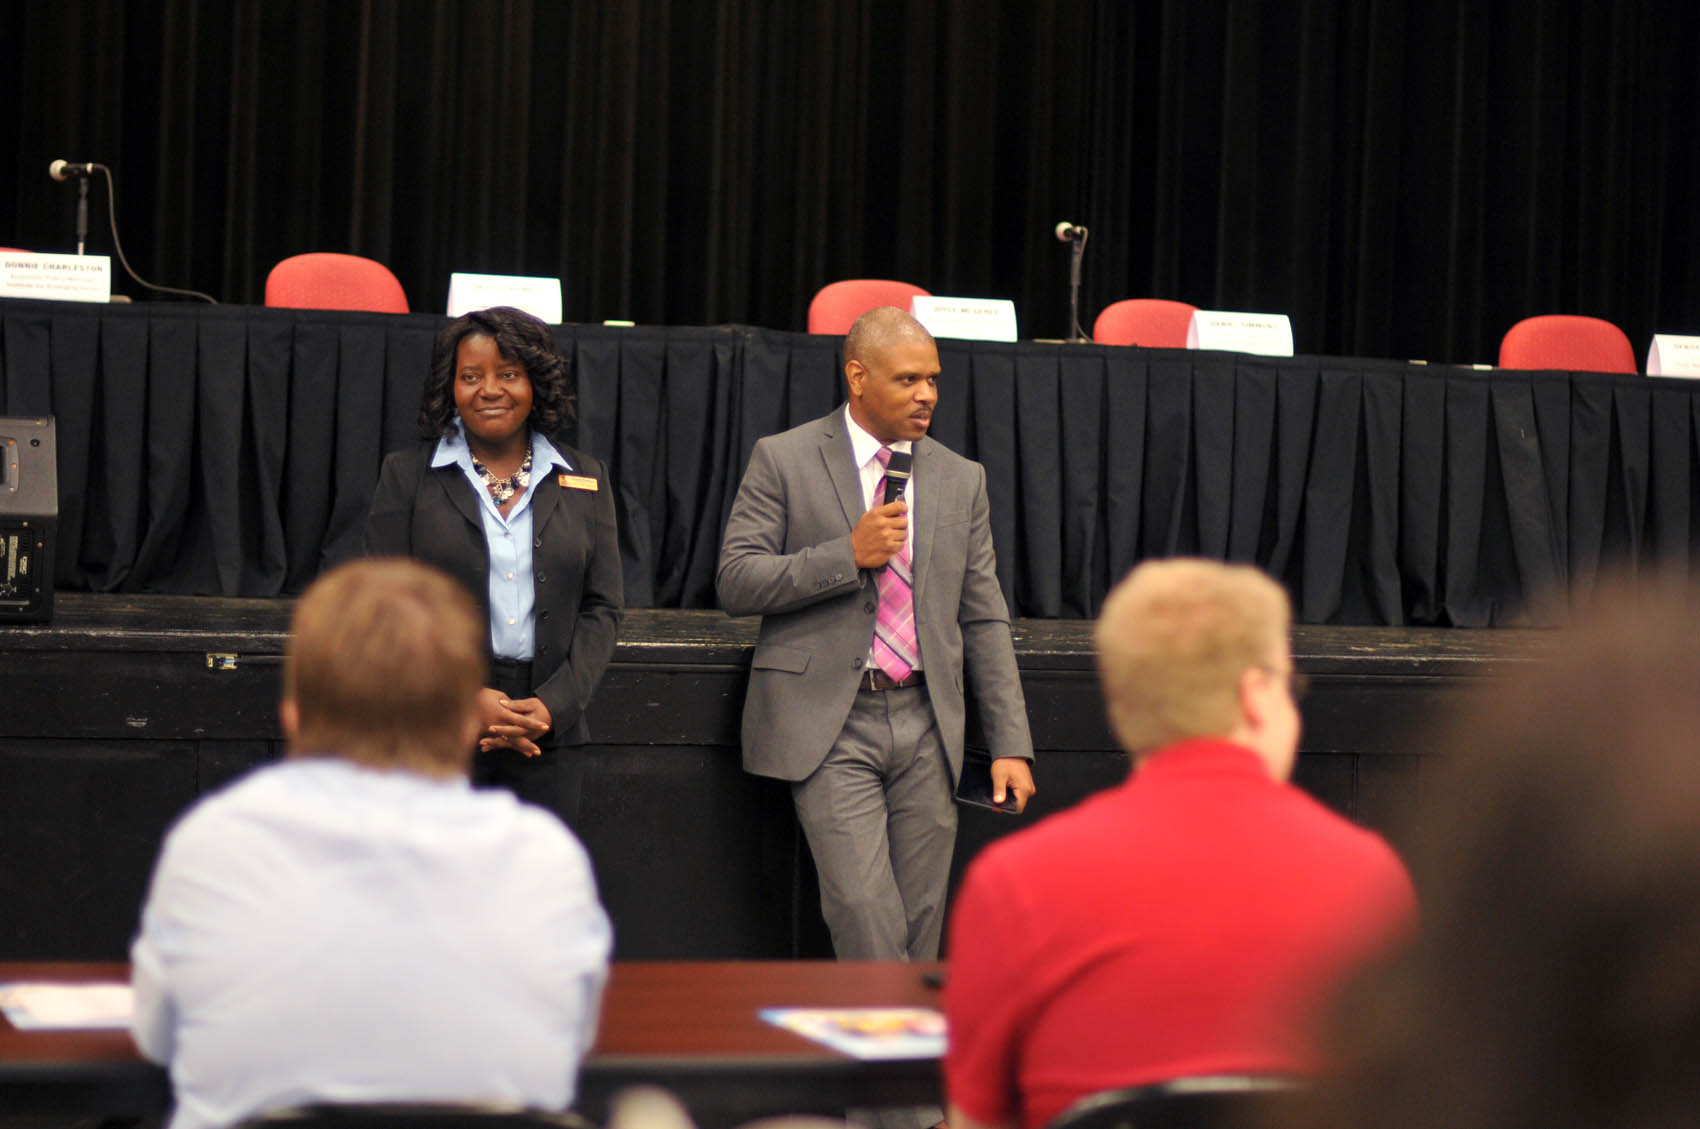 Click to enlarge,  Mary Parker, CCCC Career Center Coordinator, and Donnie Charleston, Economy Policy Manager, Institute for Emerging Issues, speak to the participants of the FutureWork Prosperity Tour 2016 event on Wednesday, June 22, at the Dennis A. Wicker Civic Center in Sanford.